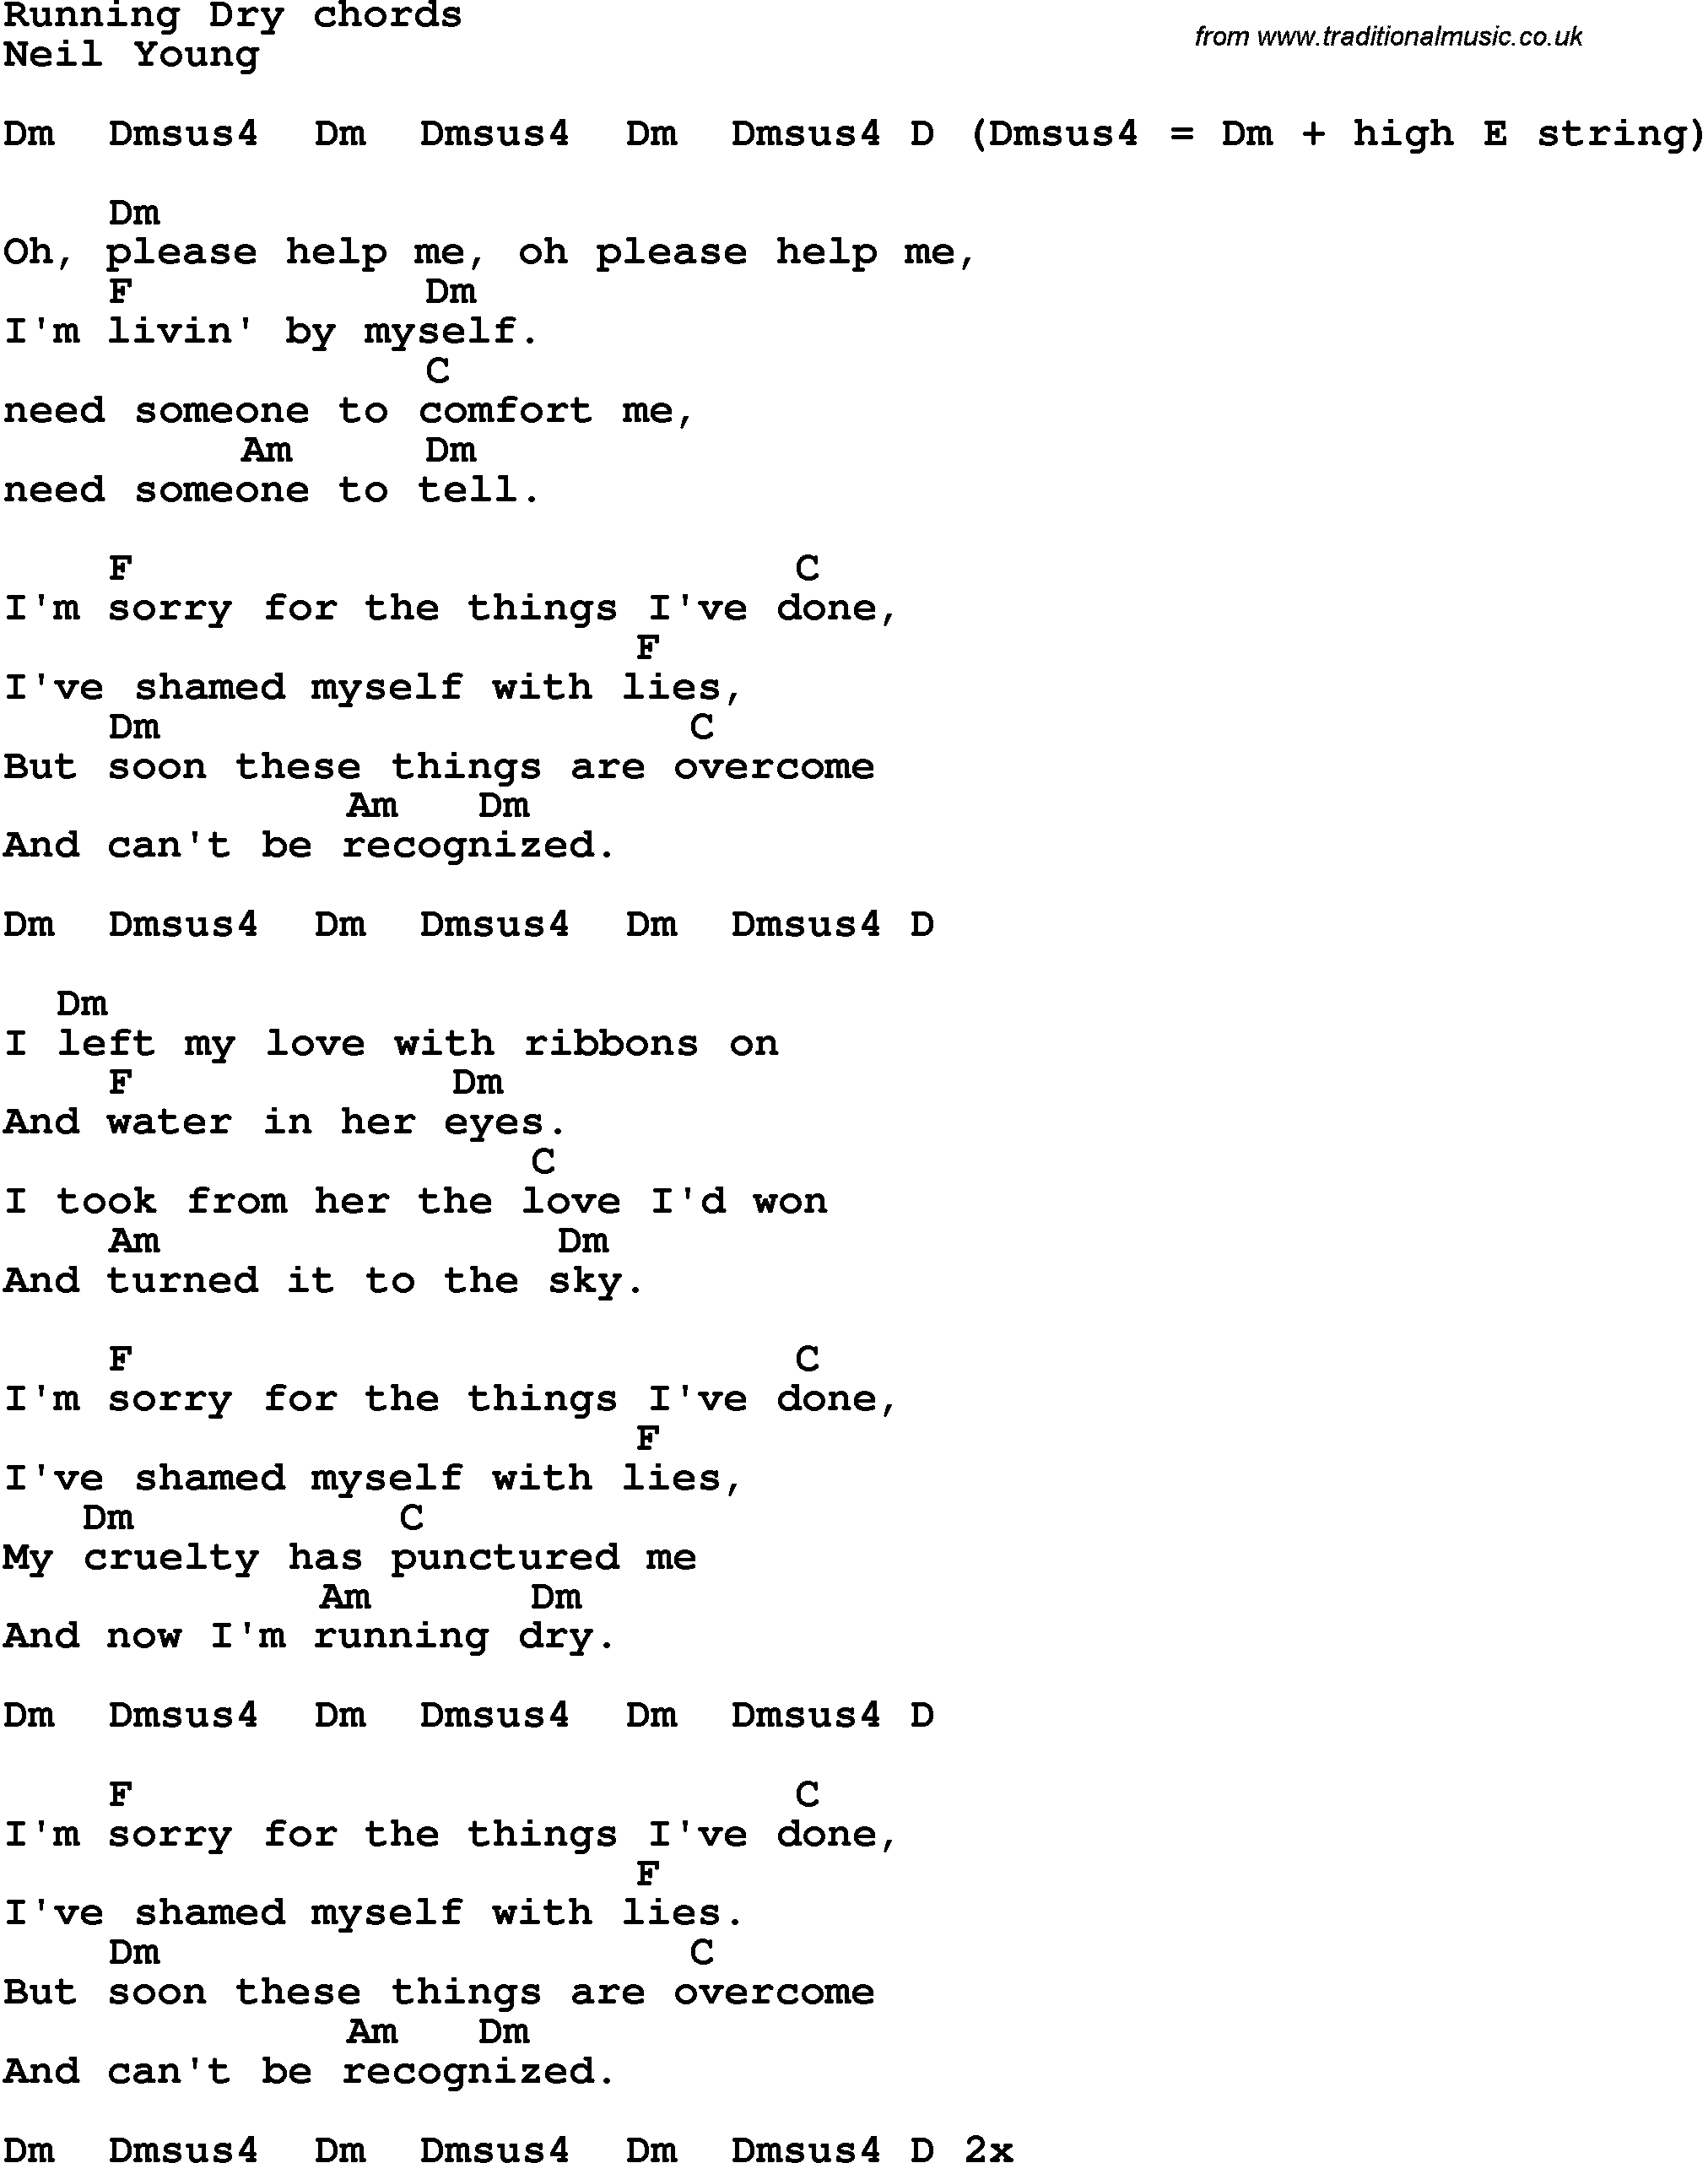 High and dry guitar chords image collections guitar chords examples song lyrics with guitar chords for running dry song lyrics with guitar chords for running dry hexwebz Images